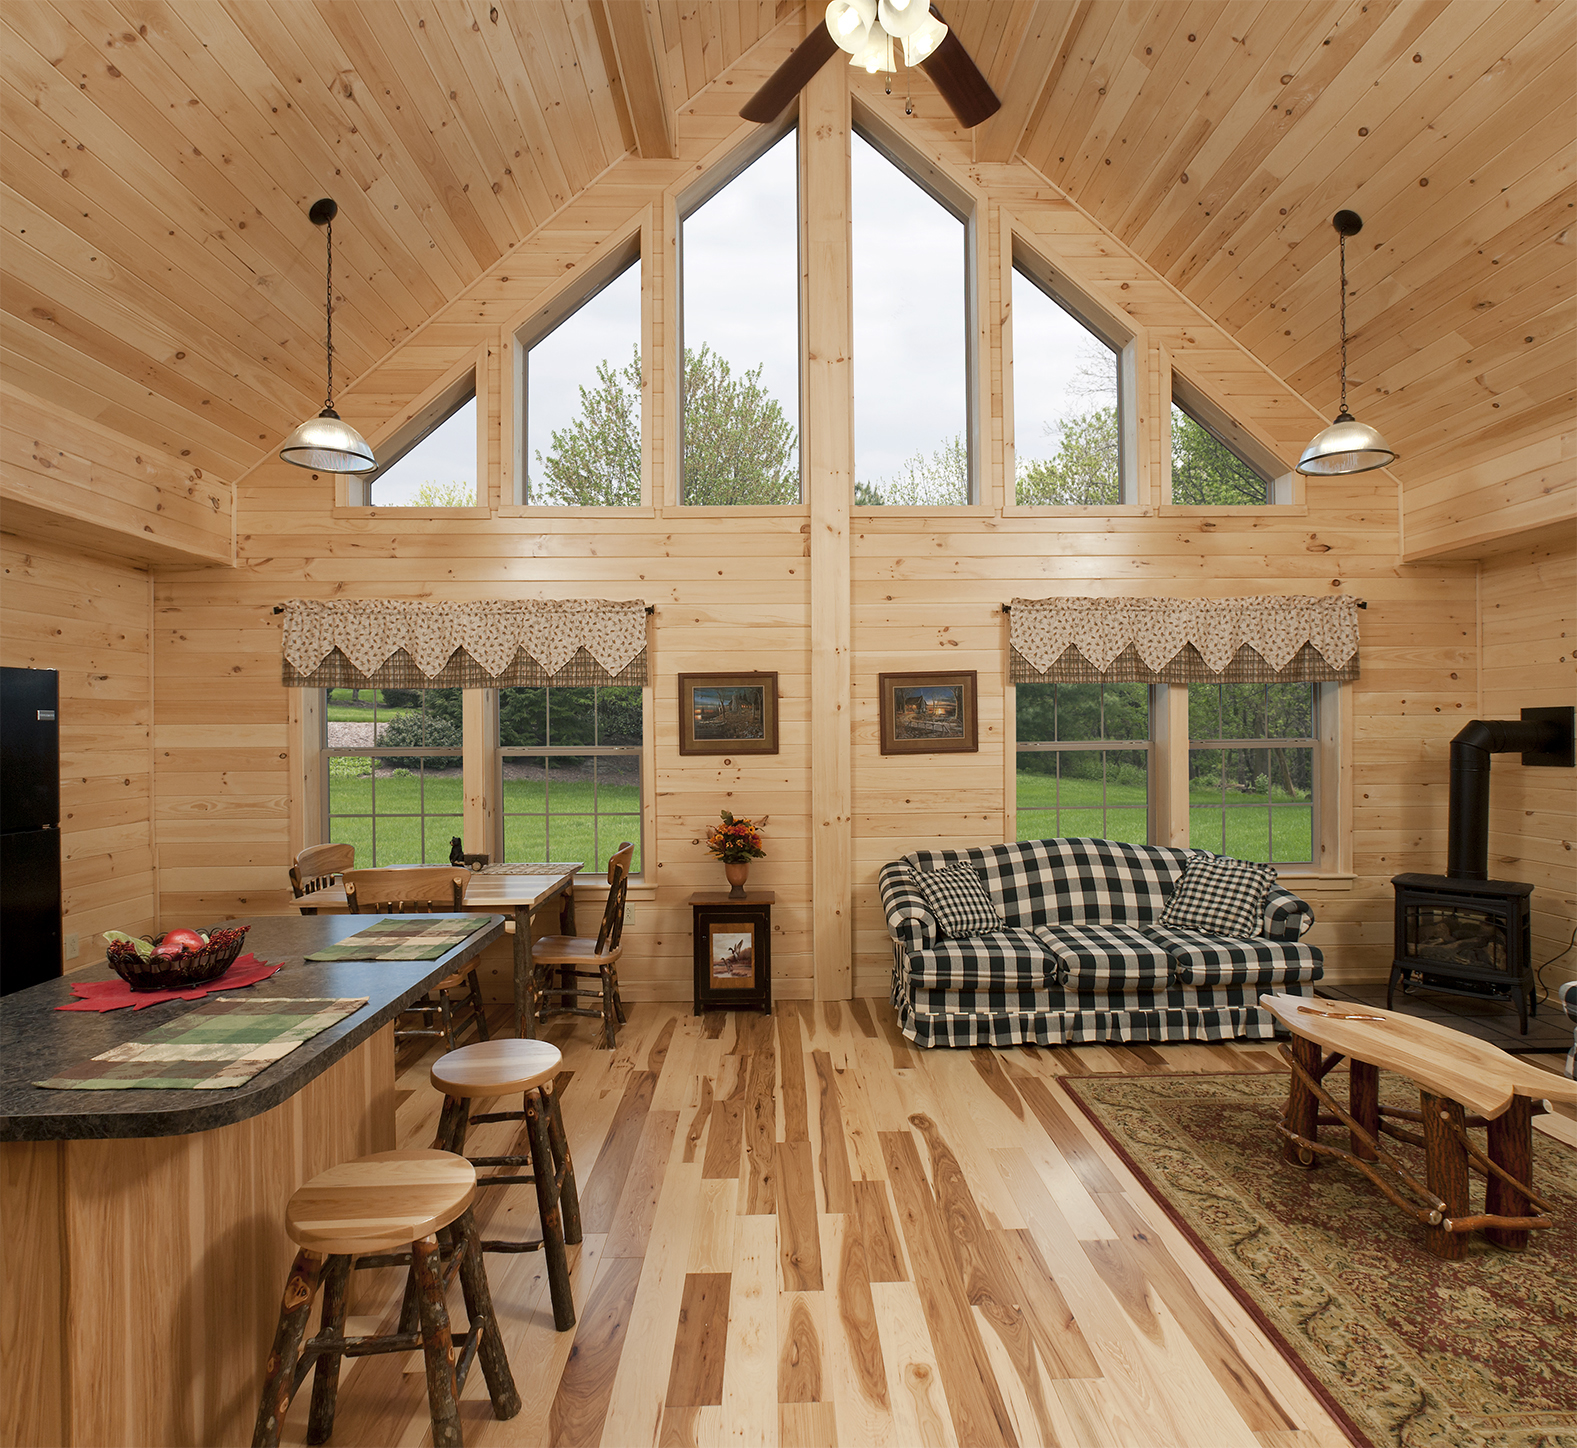 Prefab Log Cabin Pictures and Prefab Log Home Photos | Zook Cabins on log cabin homes for rent, log cabin vacation rentals, log cabin modular house, log hunting cabins prefab, log cabin modular home floor plans,